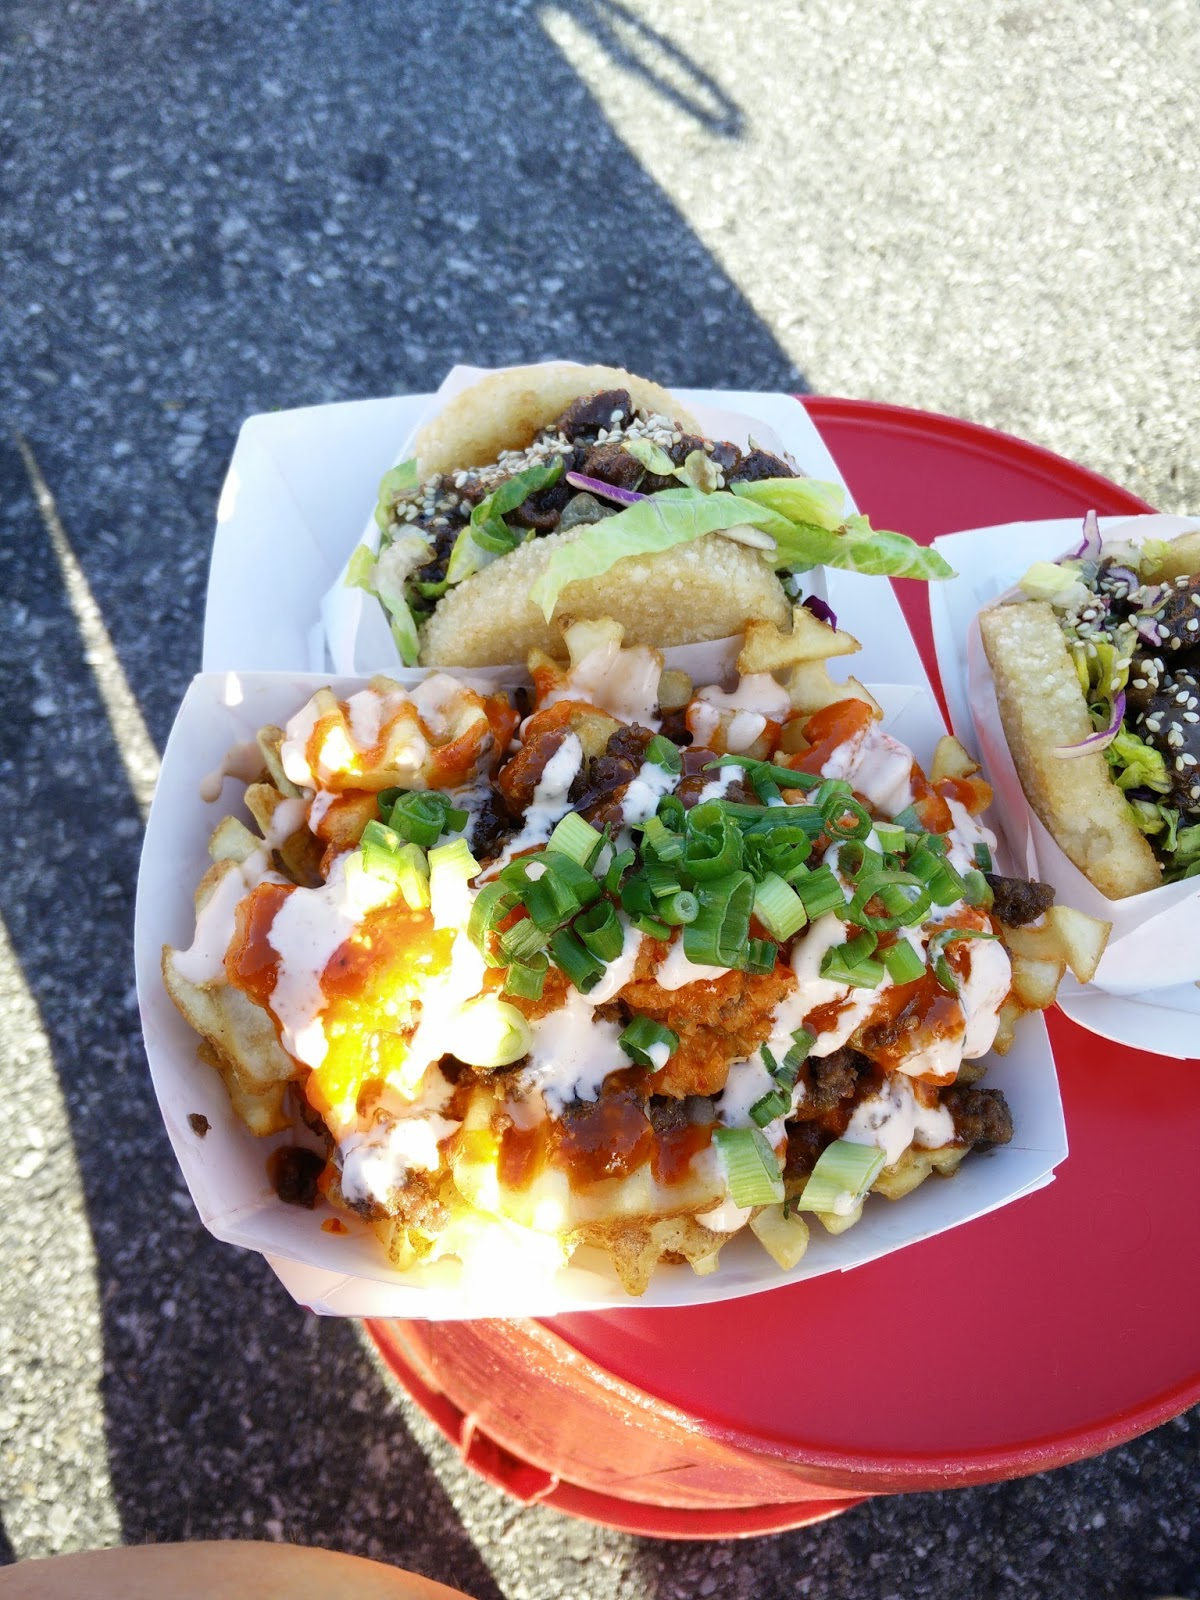 moveable feast eastridge treatbot adam s grub truck koja kitchen